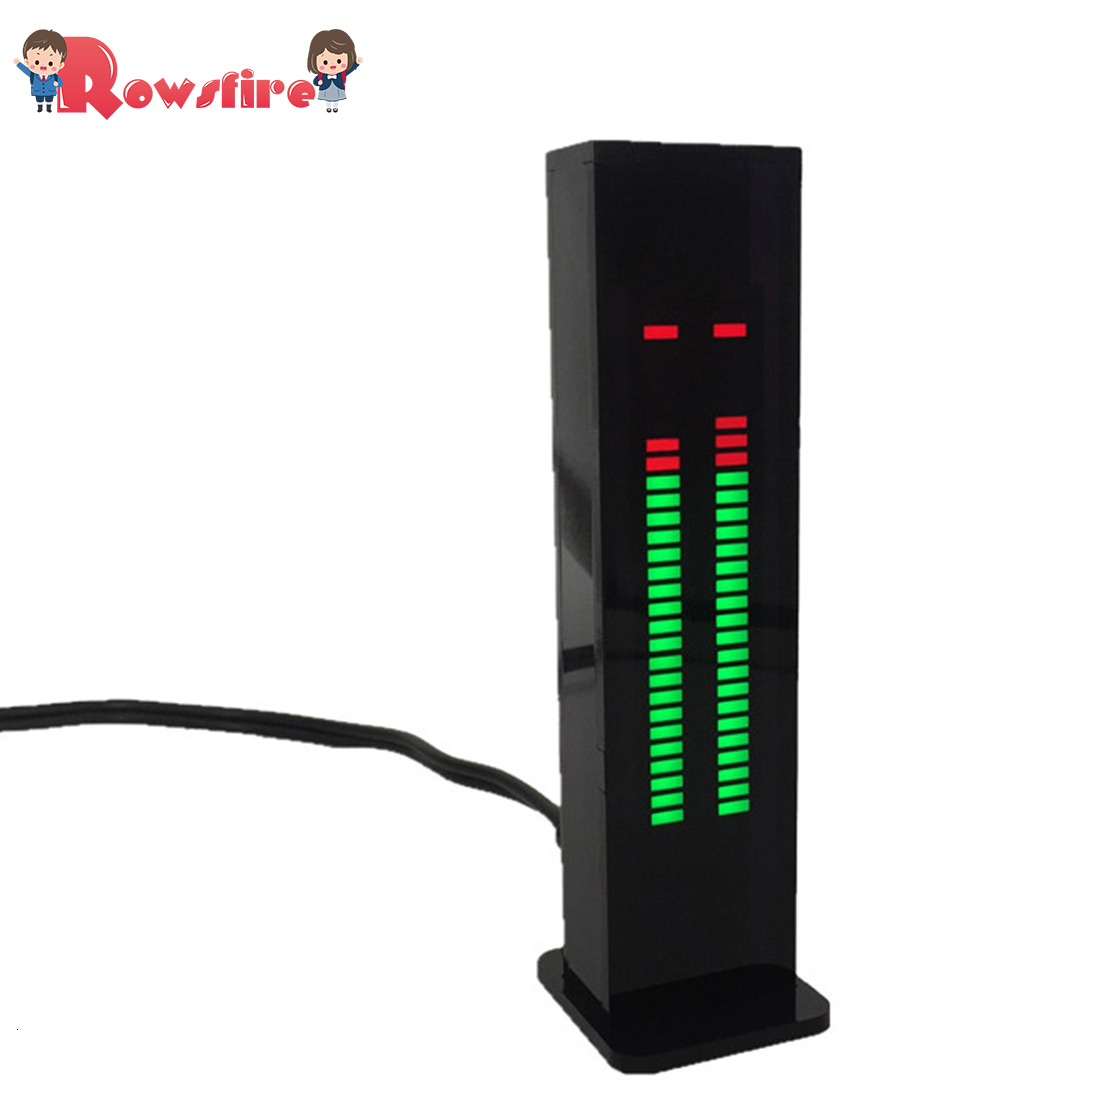 AS30 Professional Music Spectrum Display Car Amplifier Audio Modification Level Indicator - Bulk Parts/Finished Product